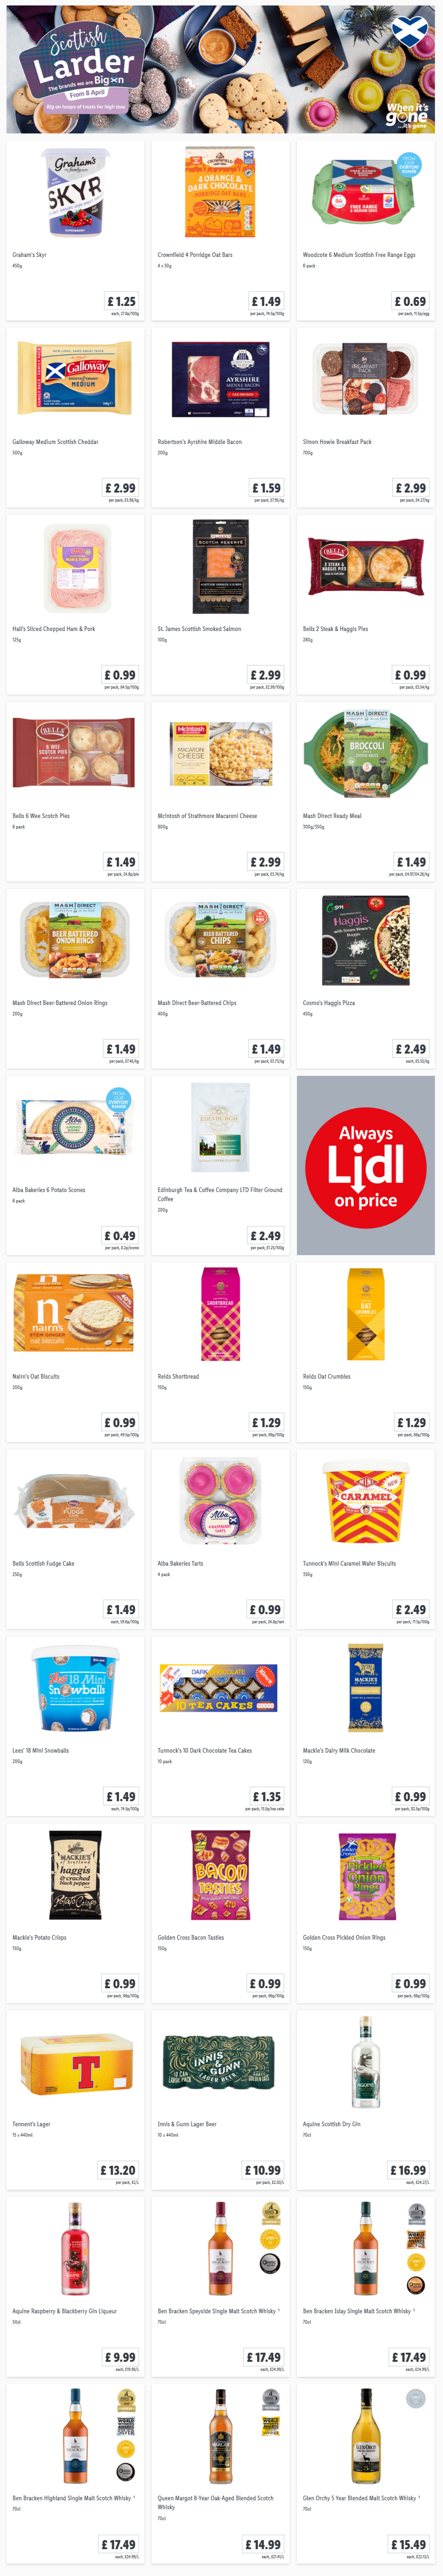 LiDL Scottish Larder From 8th April 2021 LIDL Offers this Thursday (Scotland Only)